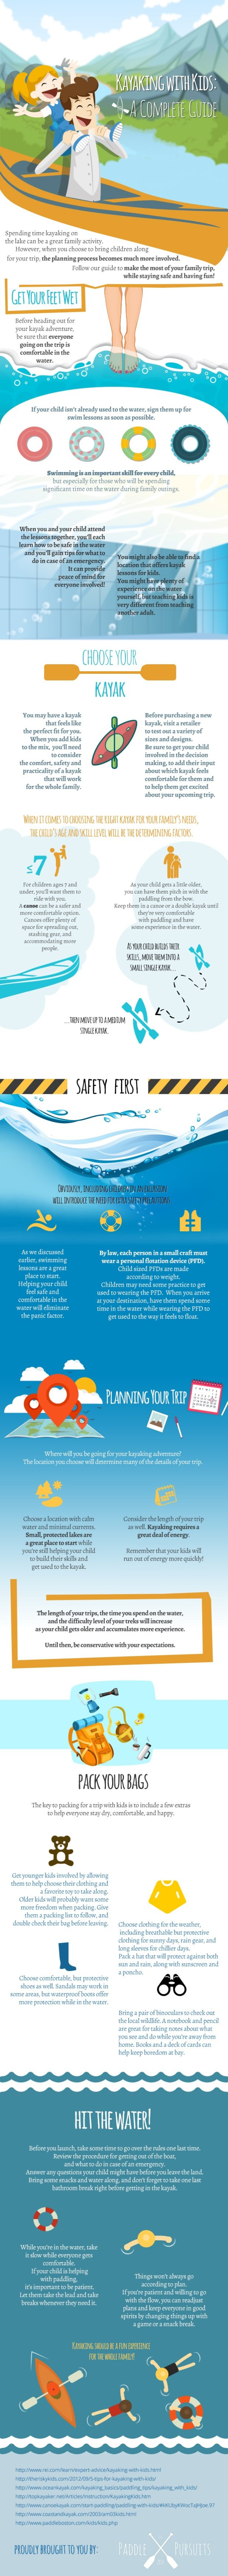 Kayaking with Kids Infographic